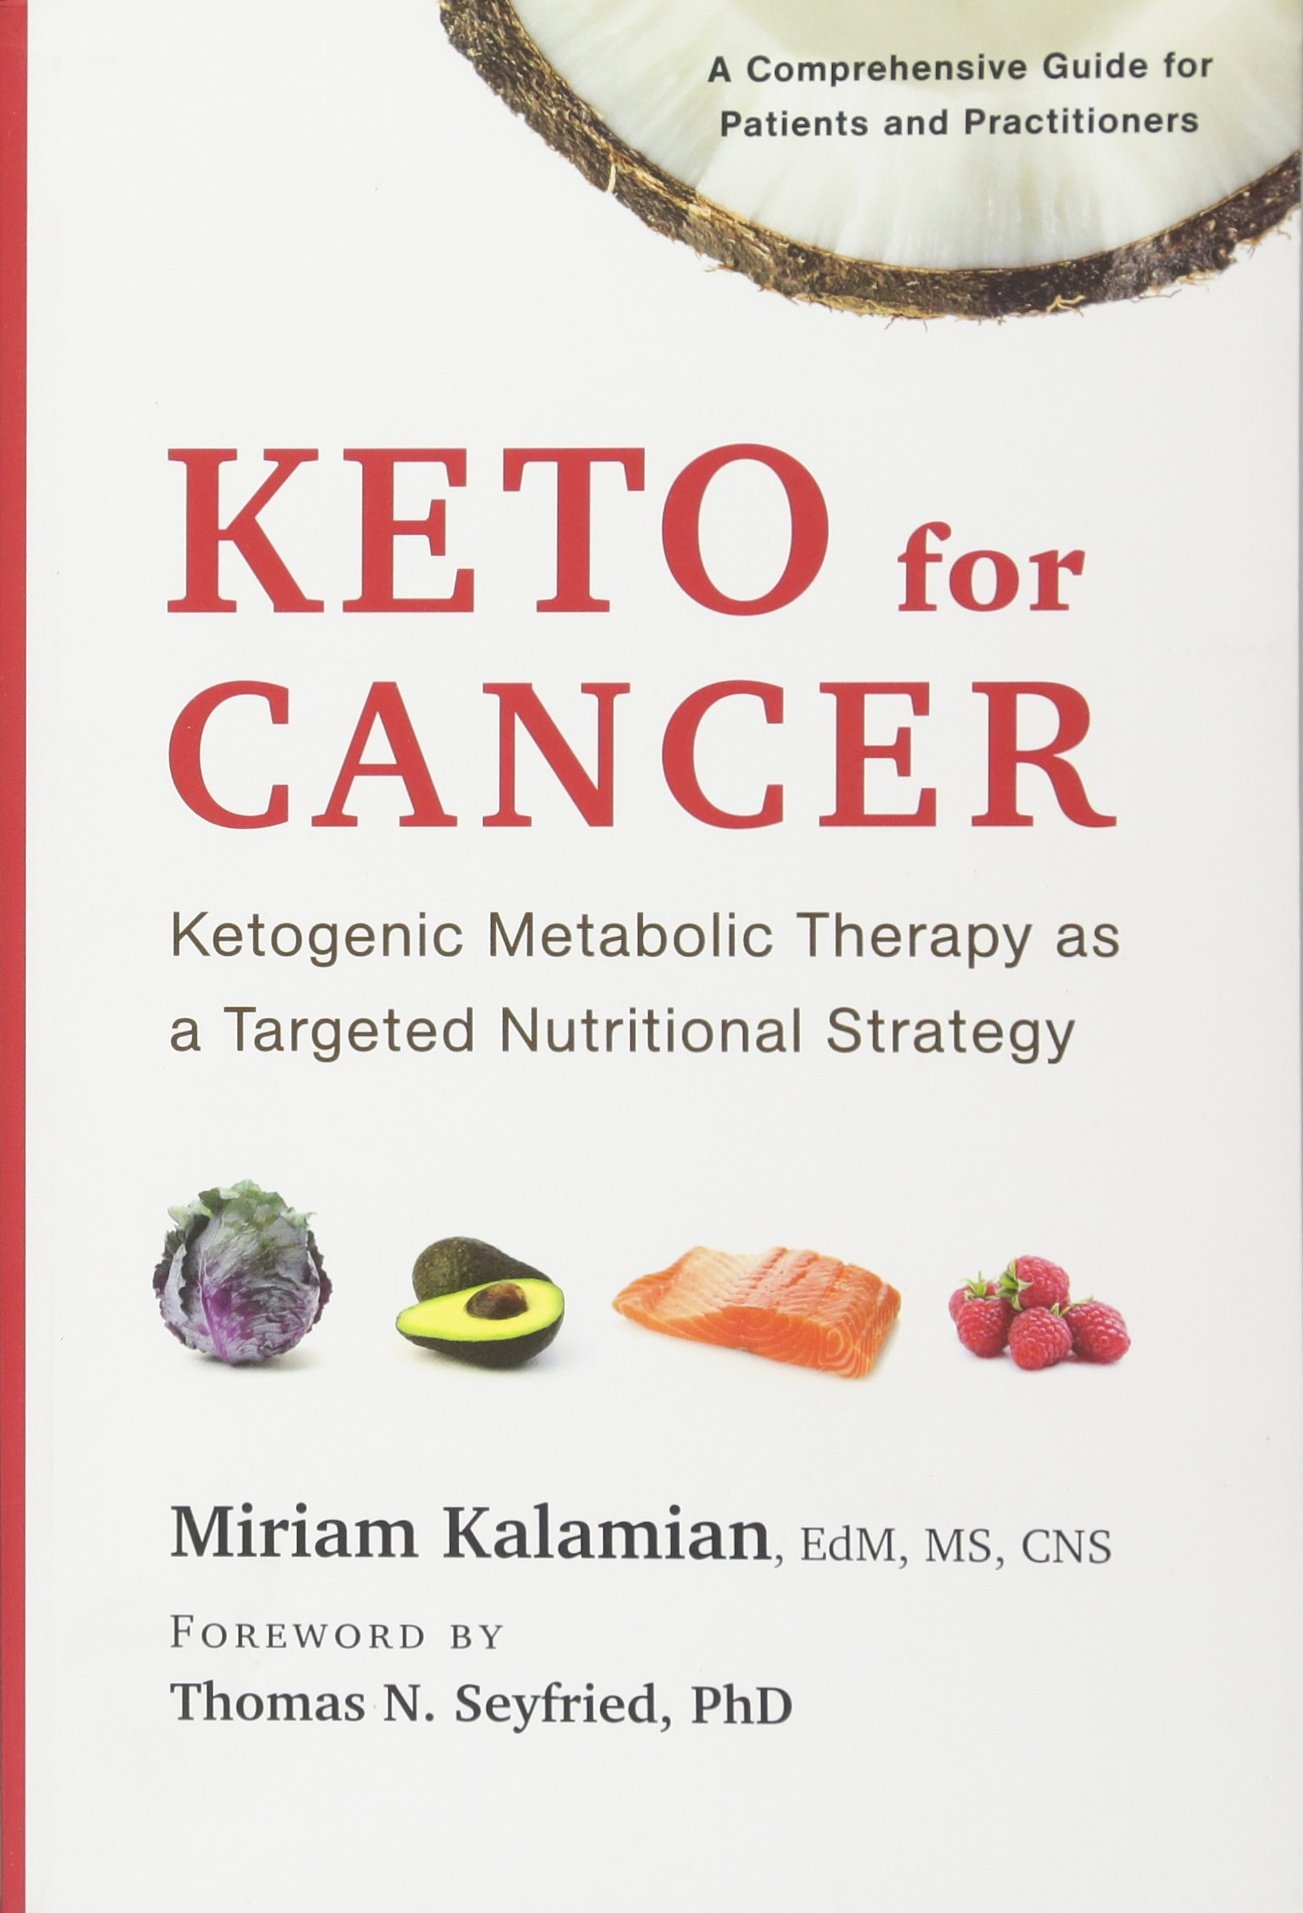 Keto For Cancer Ketogenic Metabolic Therapy As A Targeted Nutritional Strategy Kalamian Edm Ms Cns Miriam Seyfried Thomas N 9781603587013 Books Amazon Ca